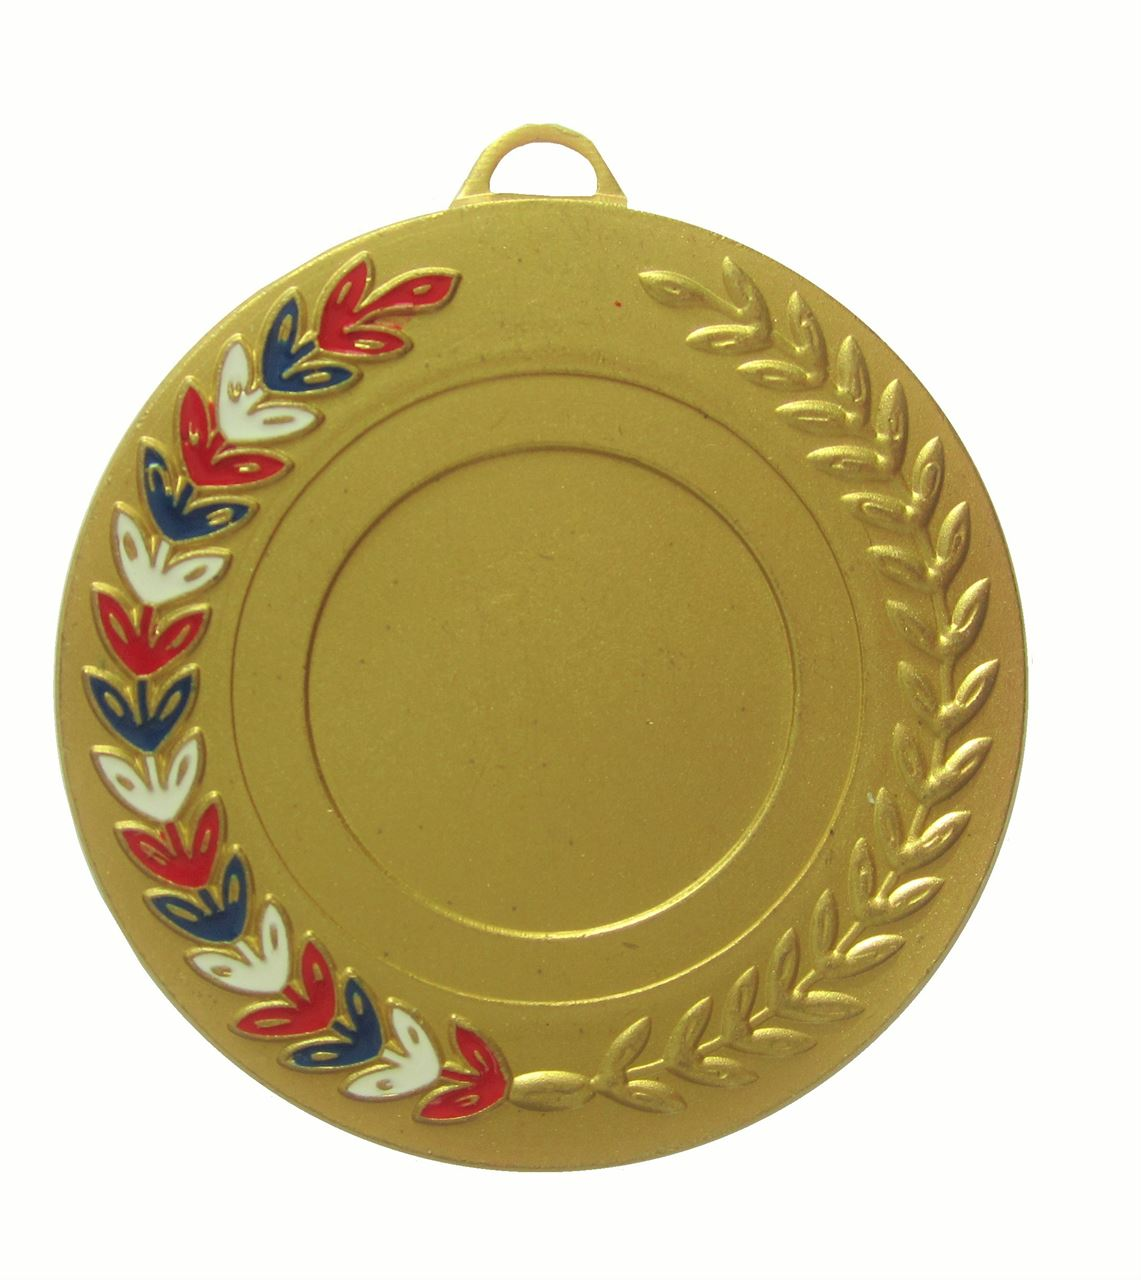 Gold Red, White & Blue Enamel Laurel Medal (size: 50mm) - 5770